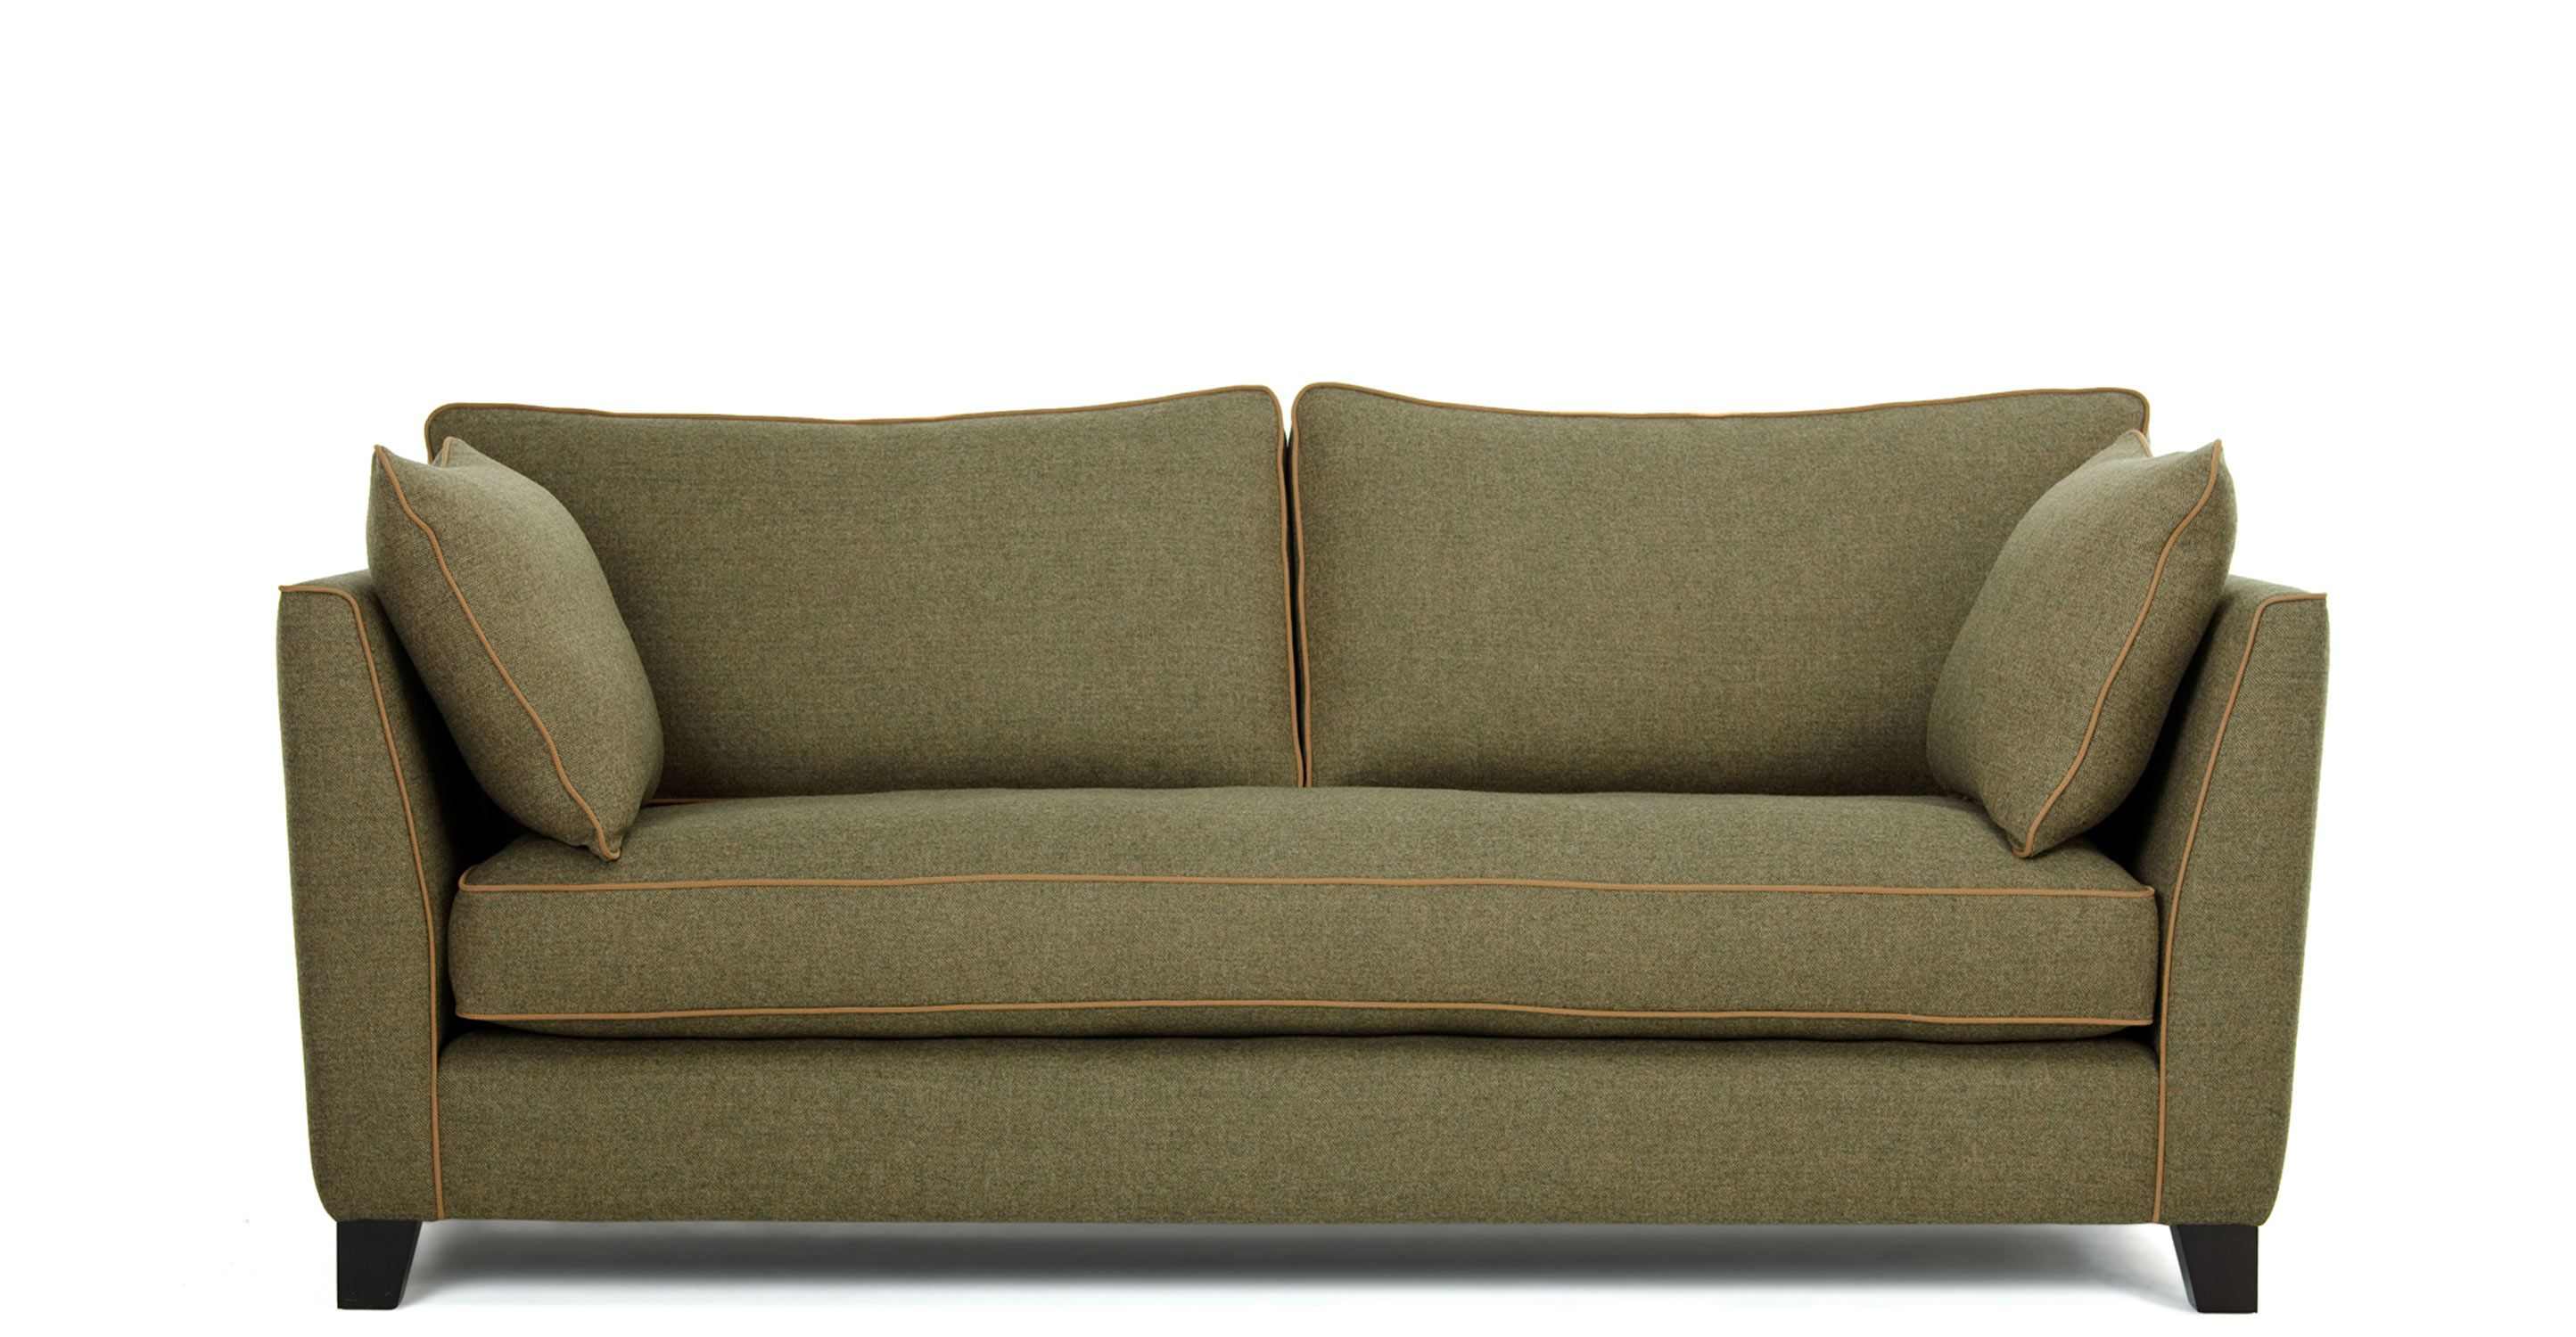 wolseley 3 seater sofa in wool tweed made com for the home rh pinterest com